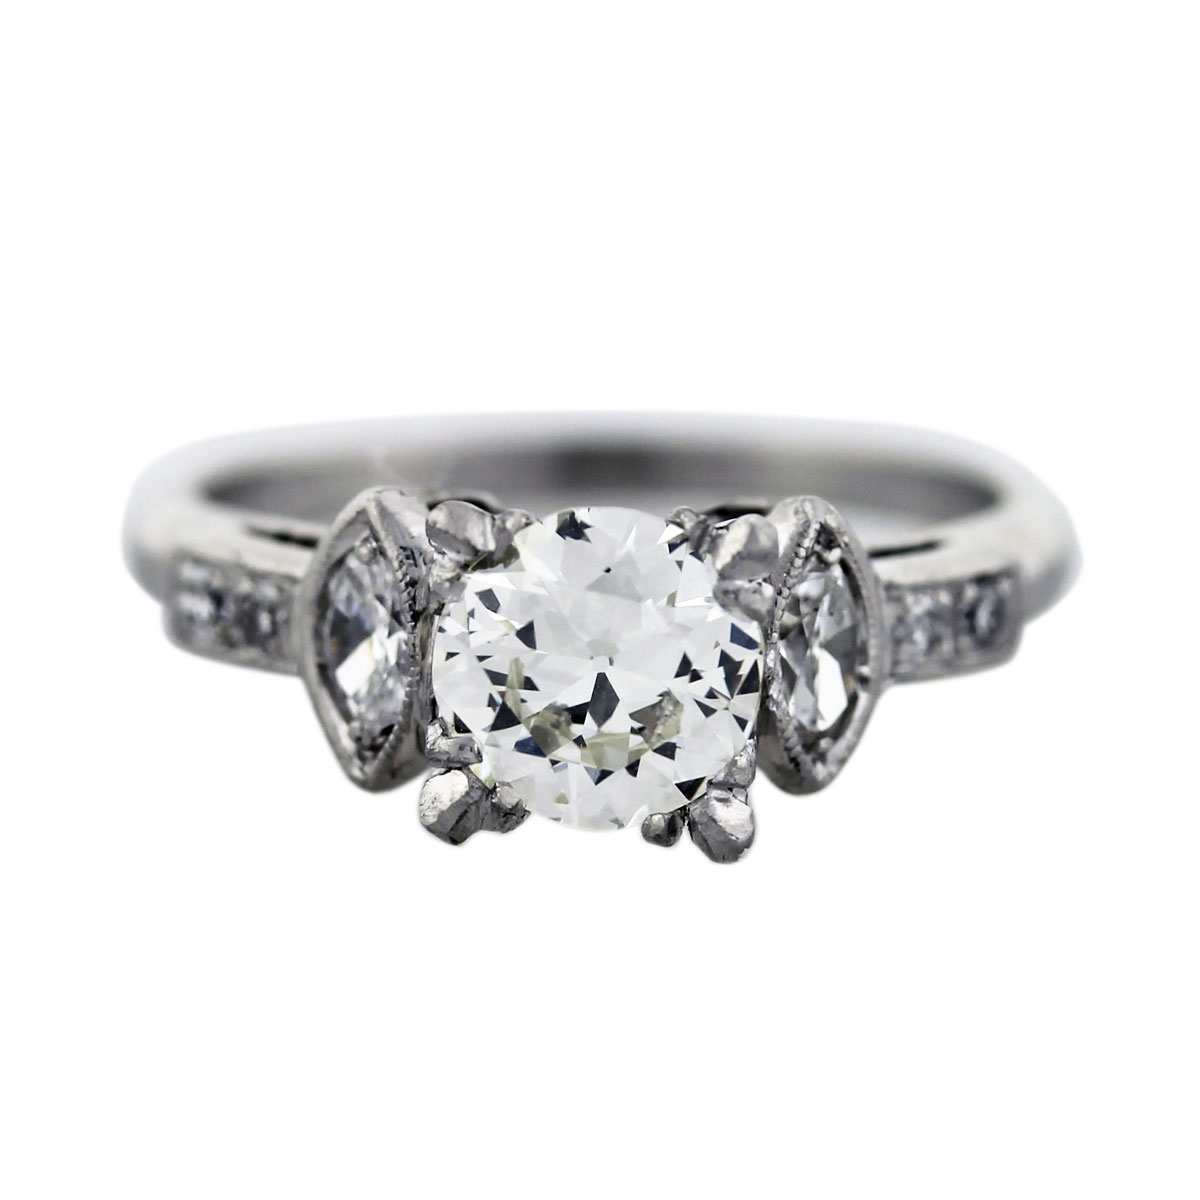 0.88ct European Cut Diamond Antique Platinum Engagement Ring